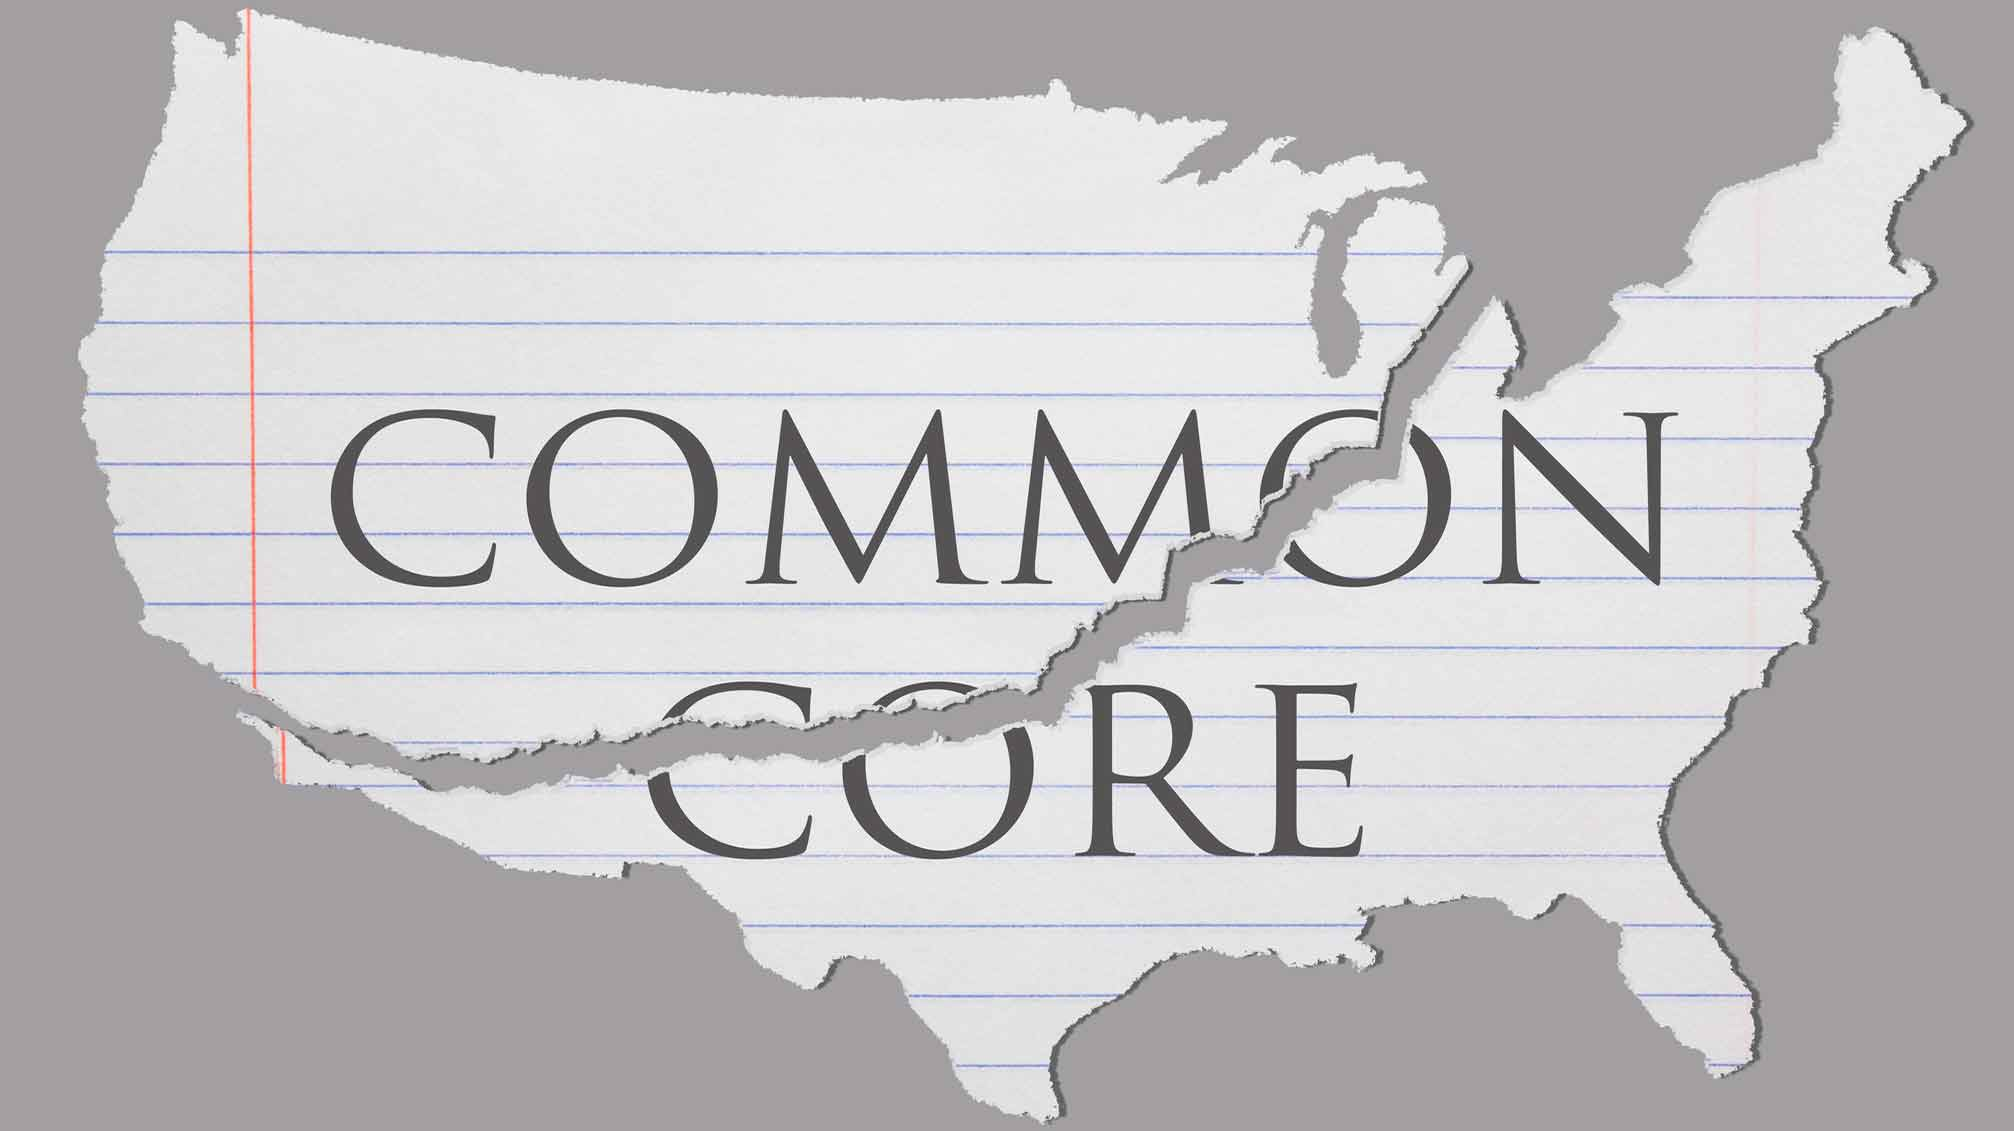 Common Core divides the nations